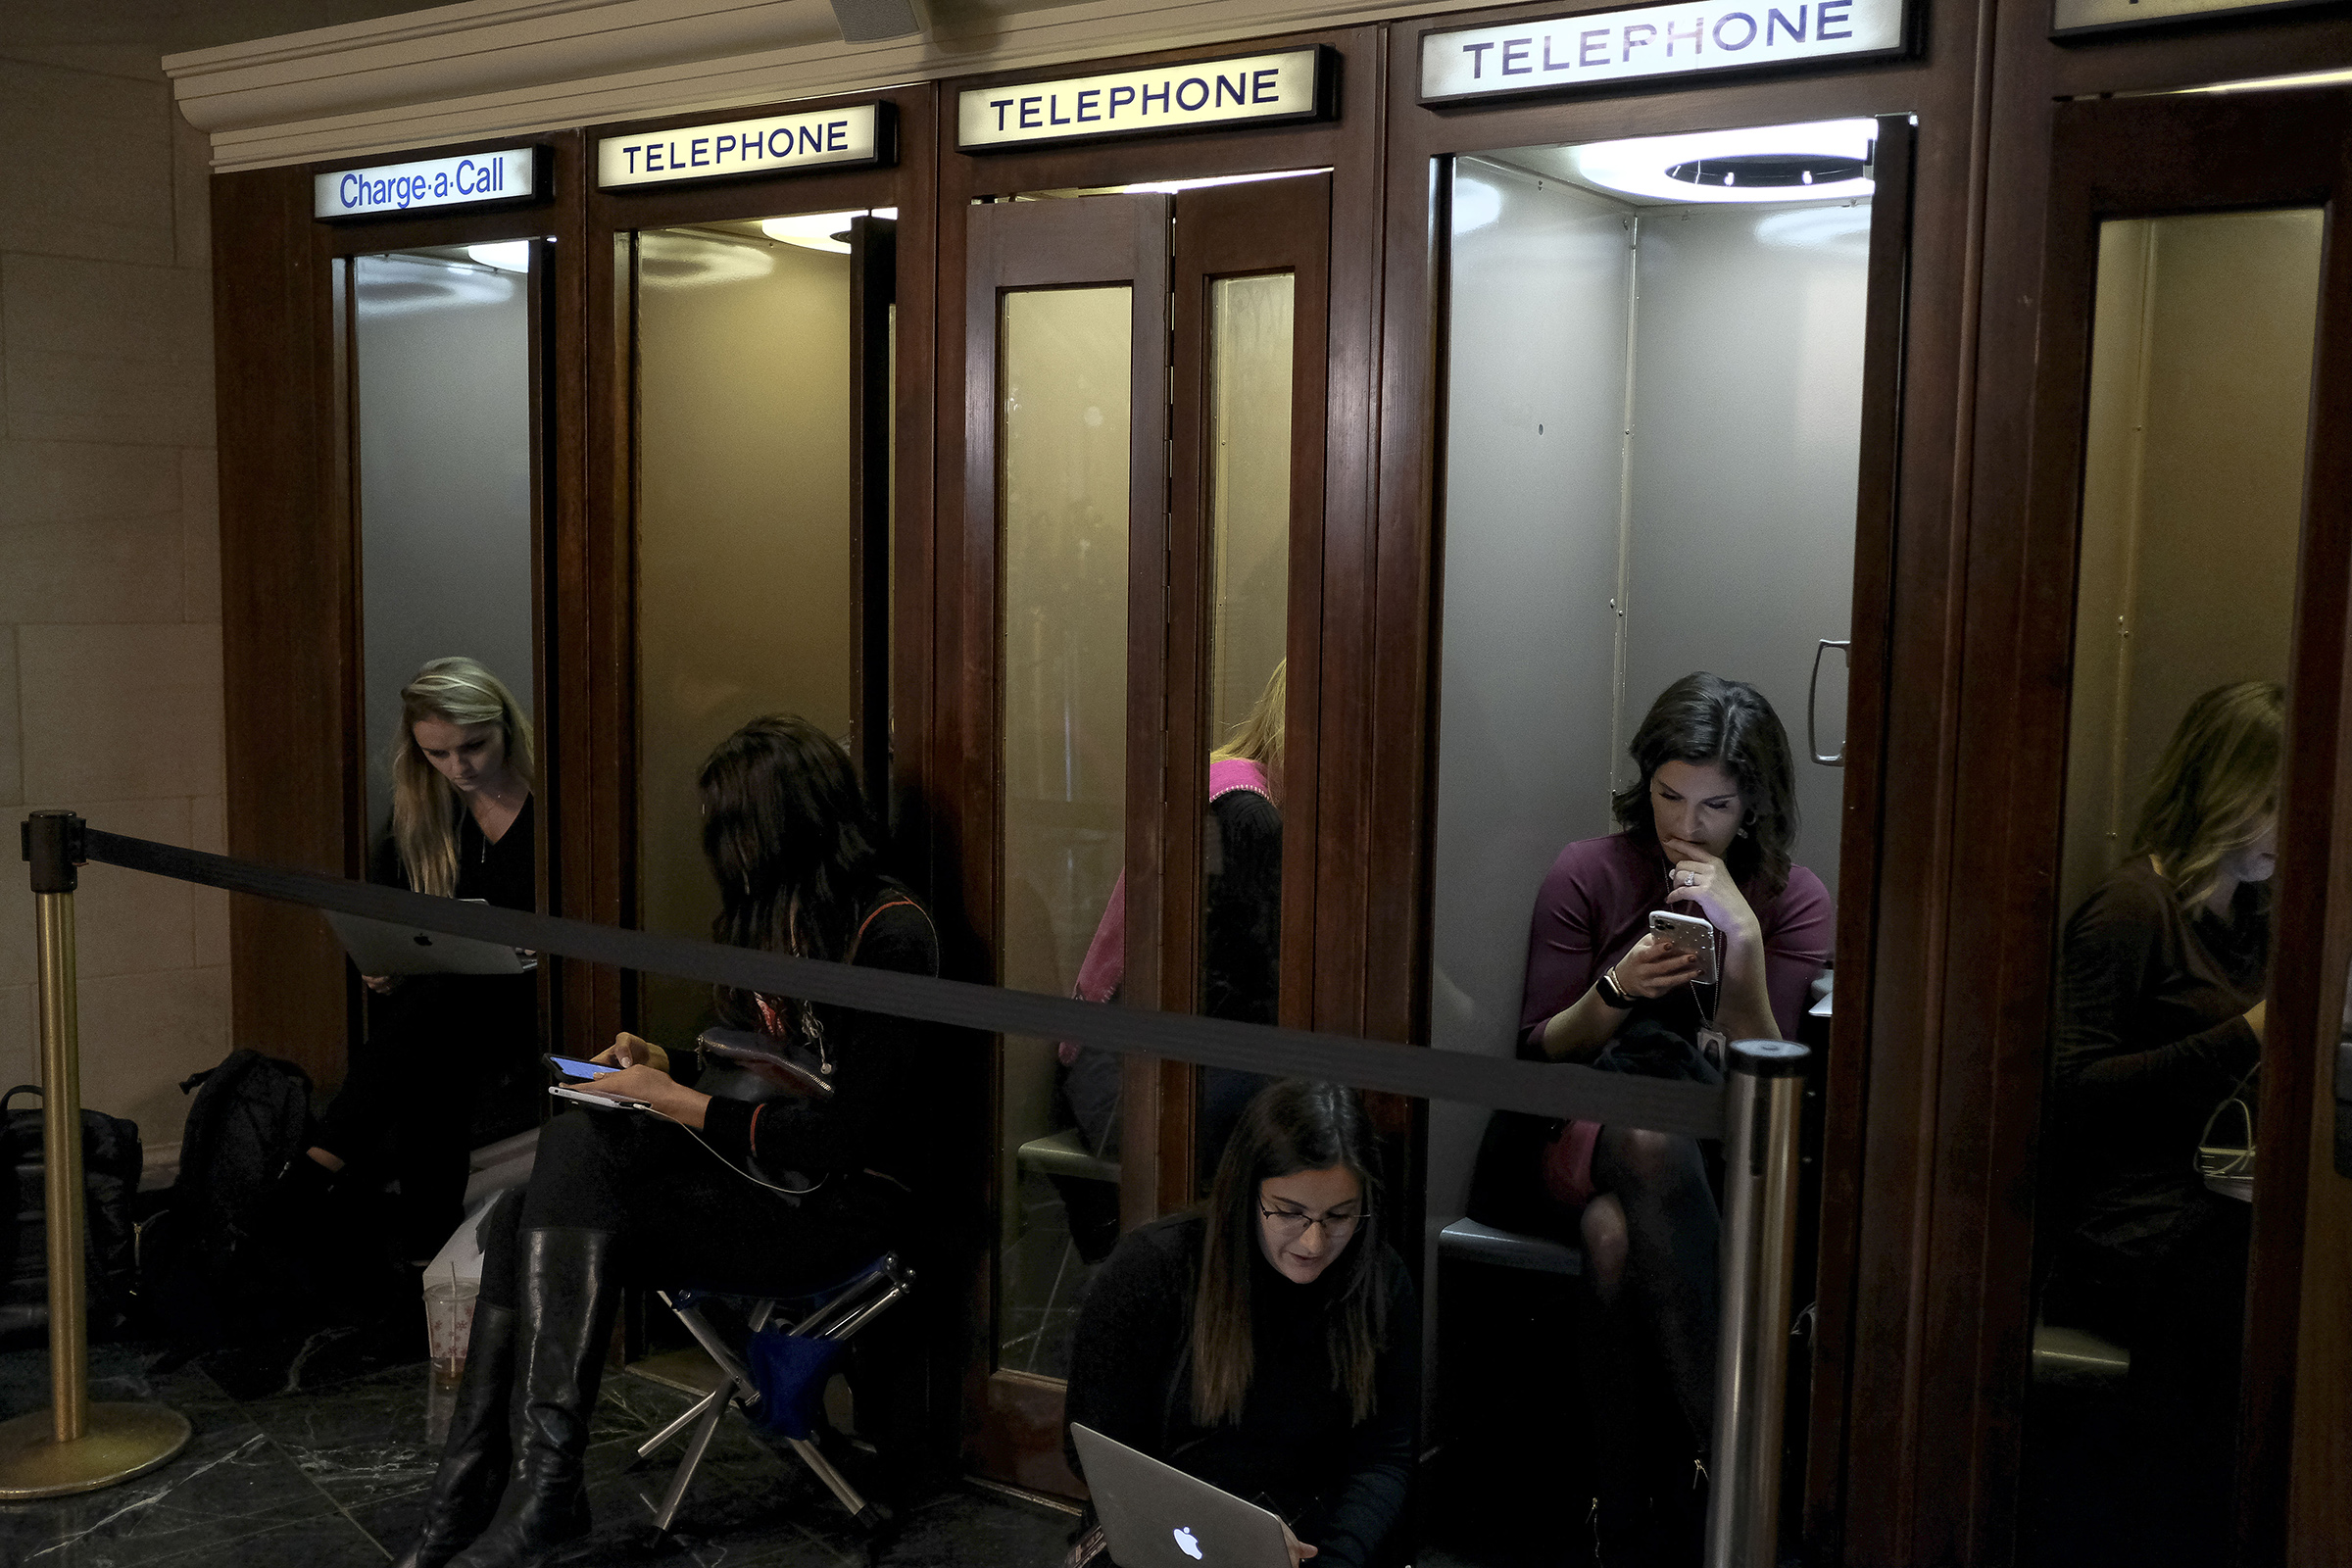 Members of the press sit in phone booths outside the House Intelligence Committee room during the hearing on the impeachment inquiry on Capitol Hill in Washington, D.C. on Nov. 19, 2019.